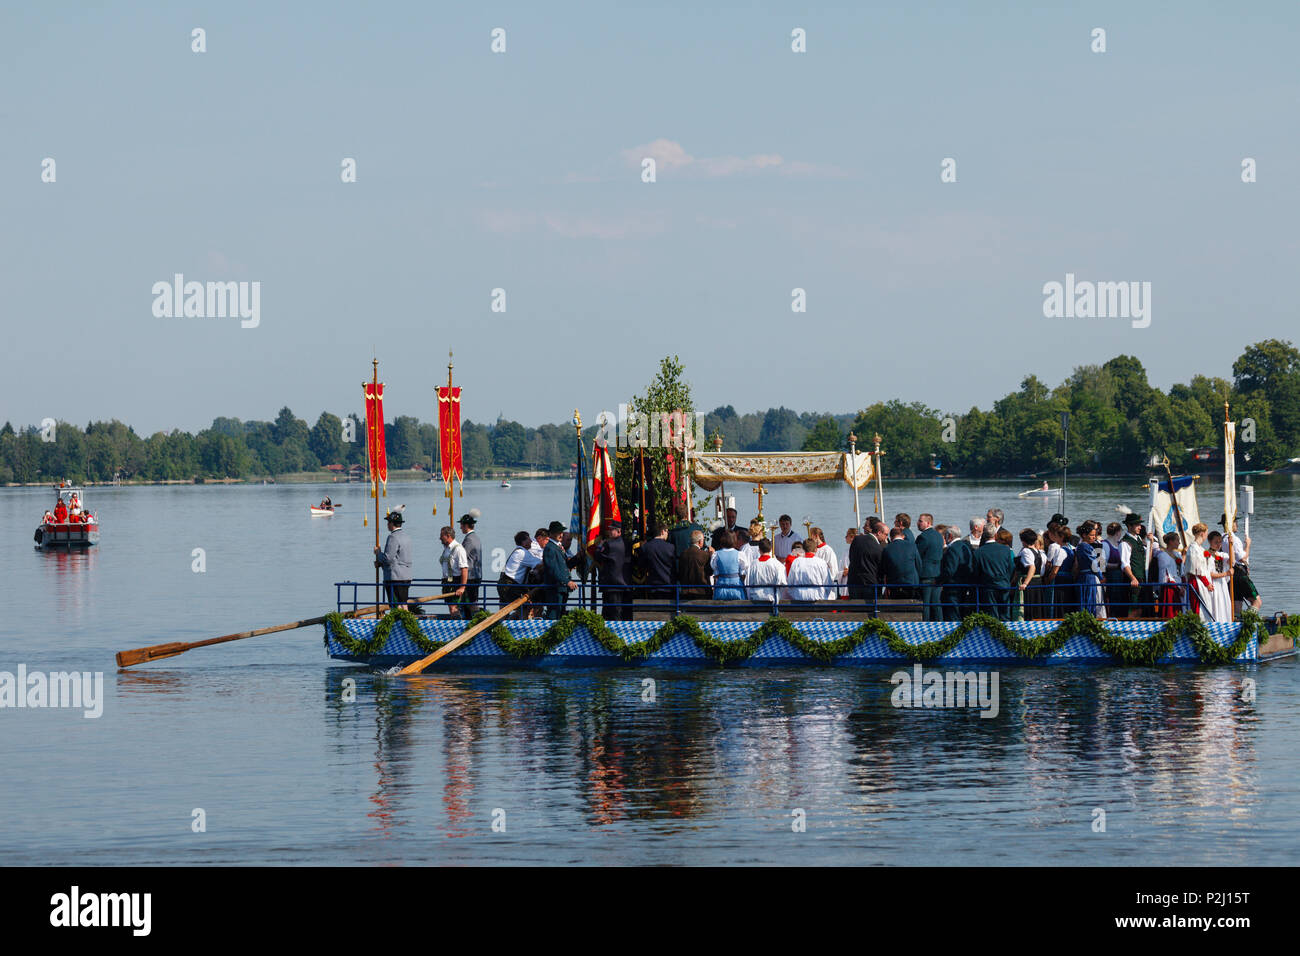 lake prozession on lake Staffelsee, Corpus Christi festival in June, religious tradition, boats crossing to Woerth island, Seeha - Stock Image